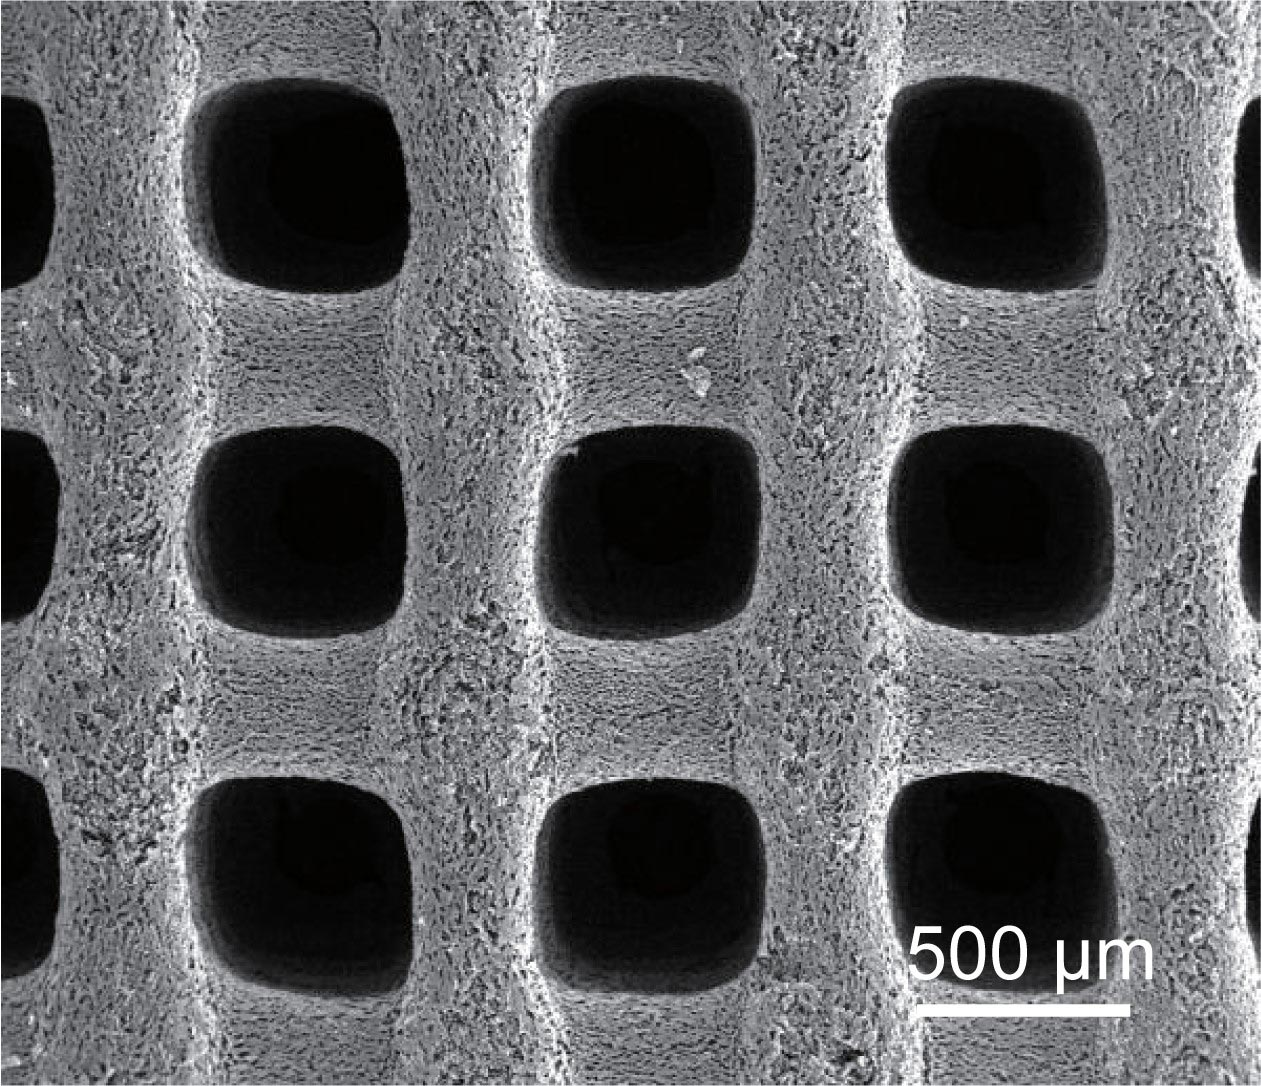 Ultralow-Temperature Supercapacitors Using Porous Carbon Aerogel – Could Power Mars & Polar Missions